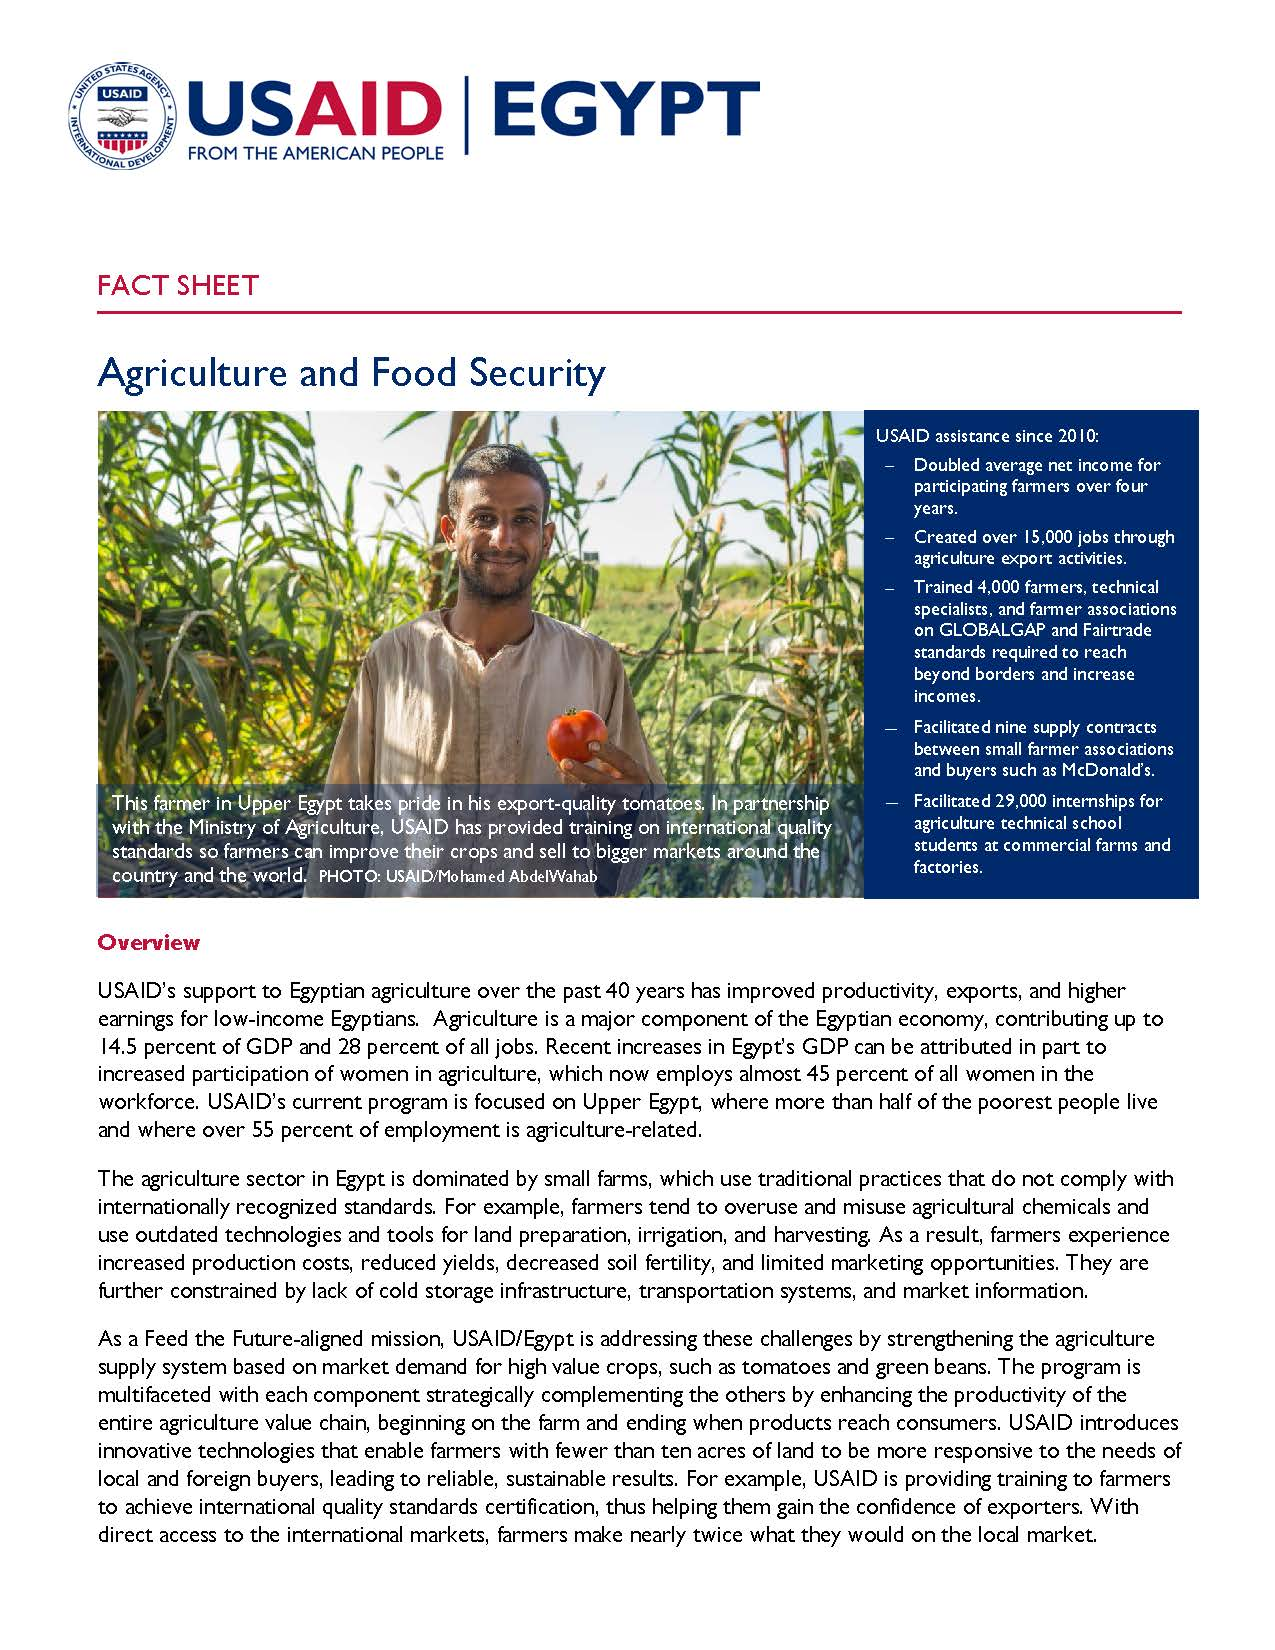 USAID/Egypt Agriculture and Food Security Fact Sheet